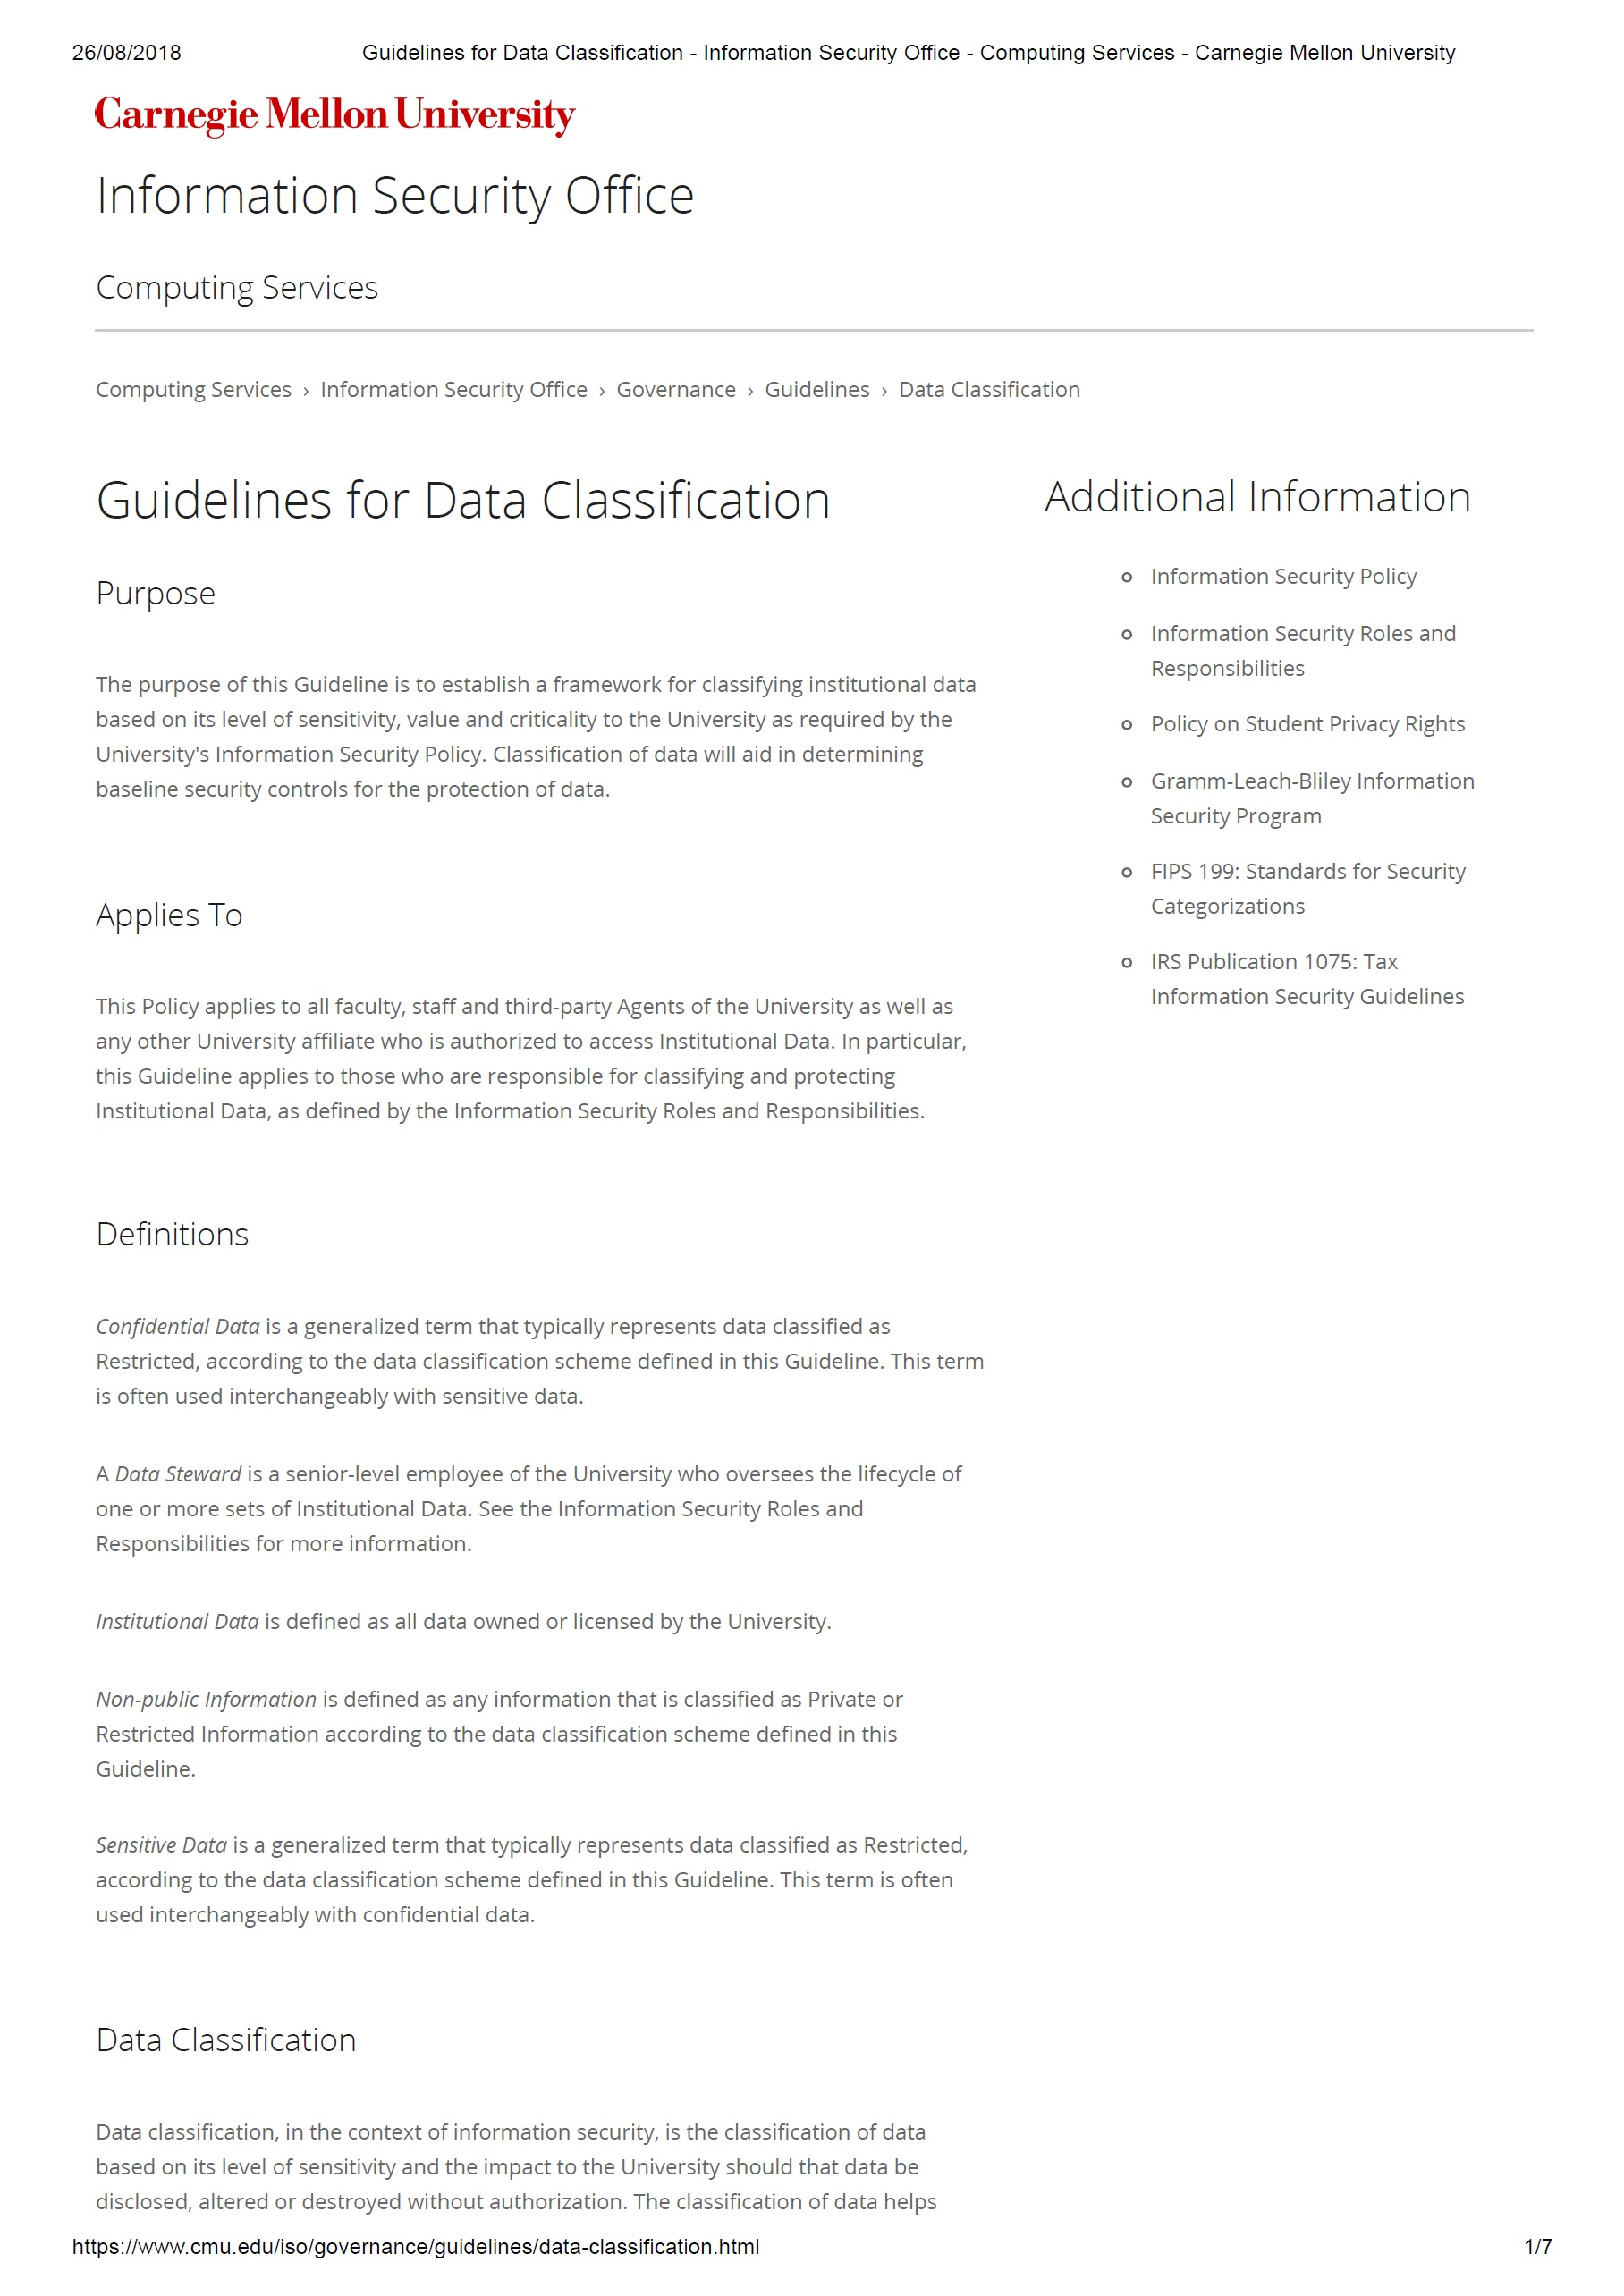 Guidelines for Data Classification – CMU